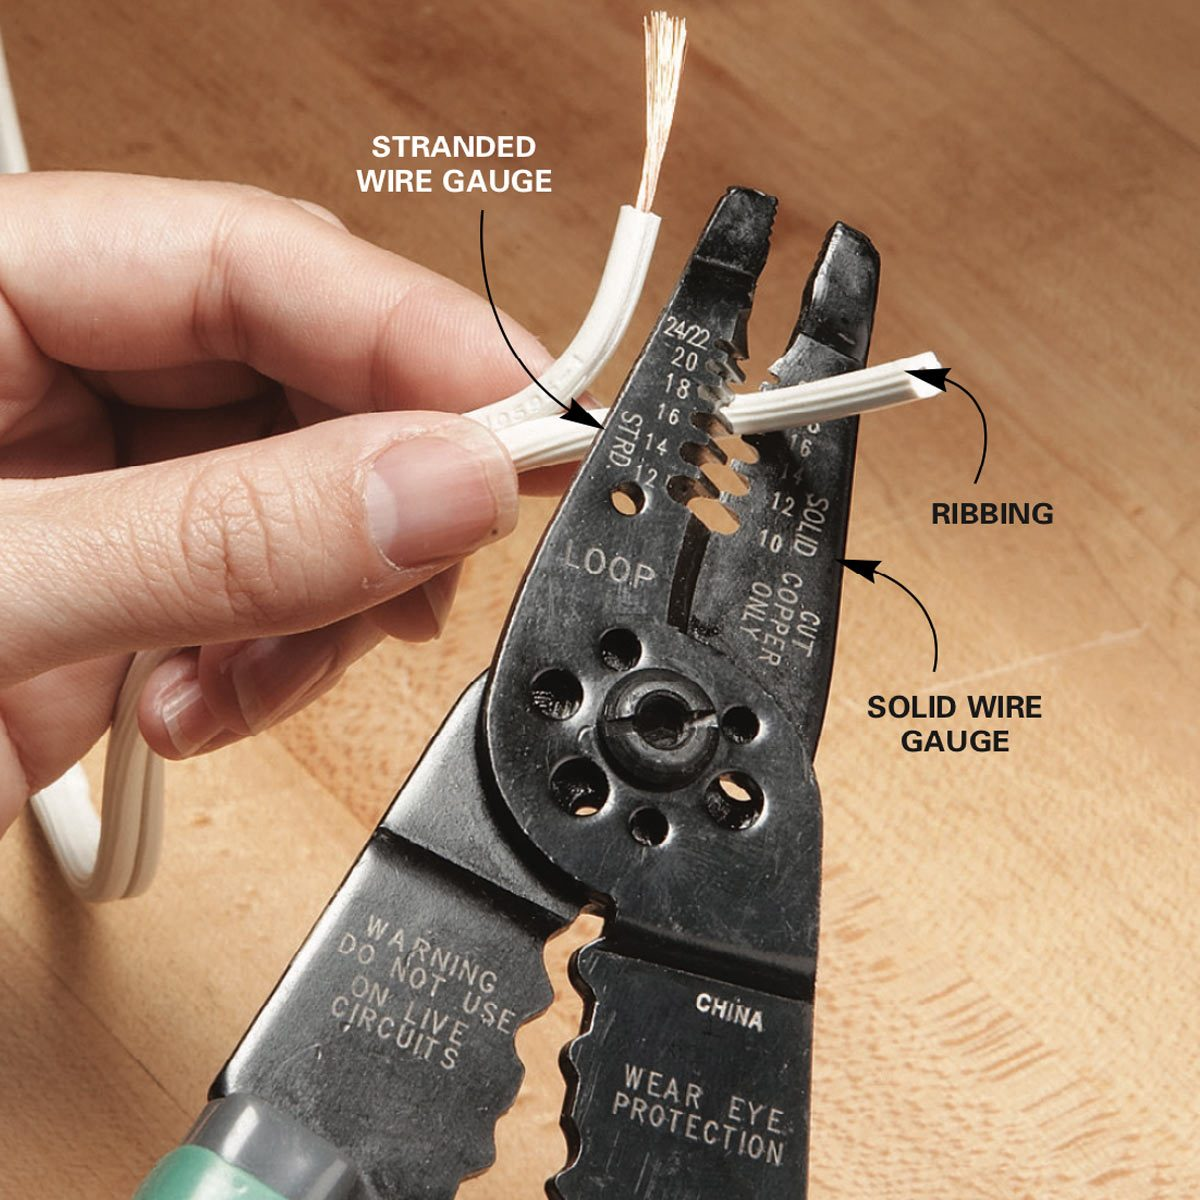 Fix A Lamp Cord Family Handyman The Wiring Ceiling Fan To Plug Strip Insulation Off Wire By Cutting And Pulling Through Stripper Prepare Cut End For New Or Pull Two